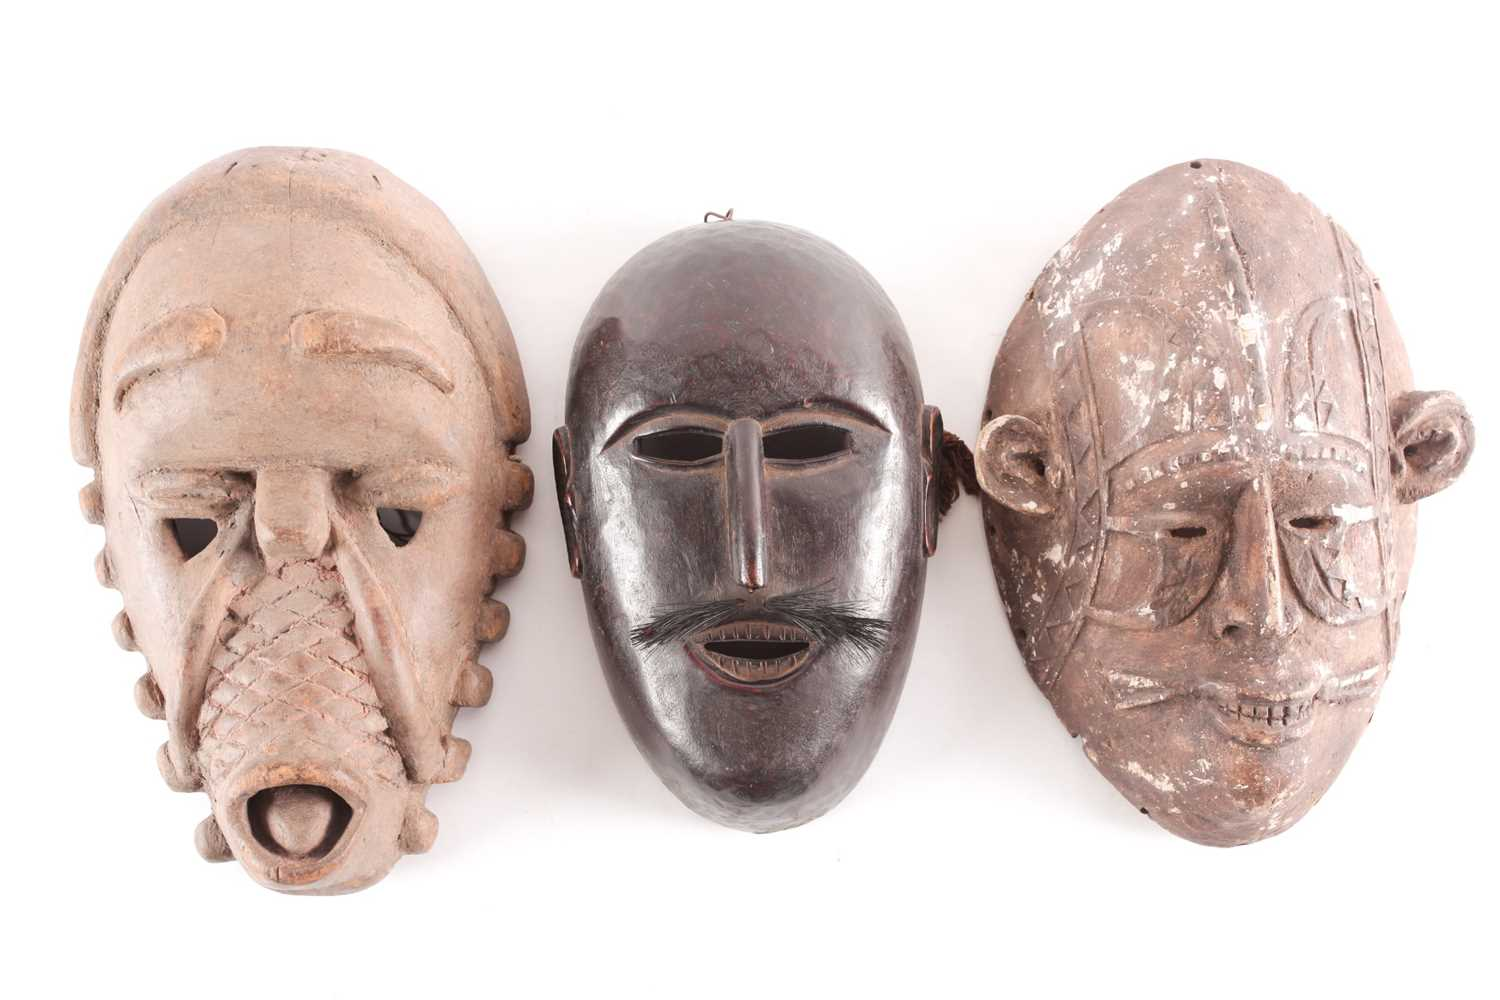 A Baule Monkey mask, Ivory Coast, the zoomorphic mask with large forehead and relief carved